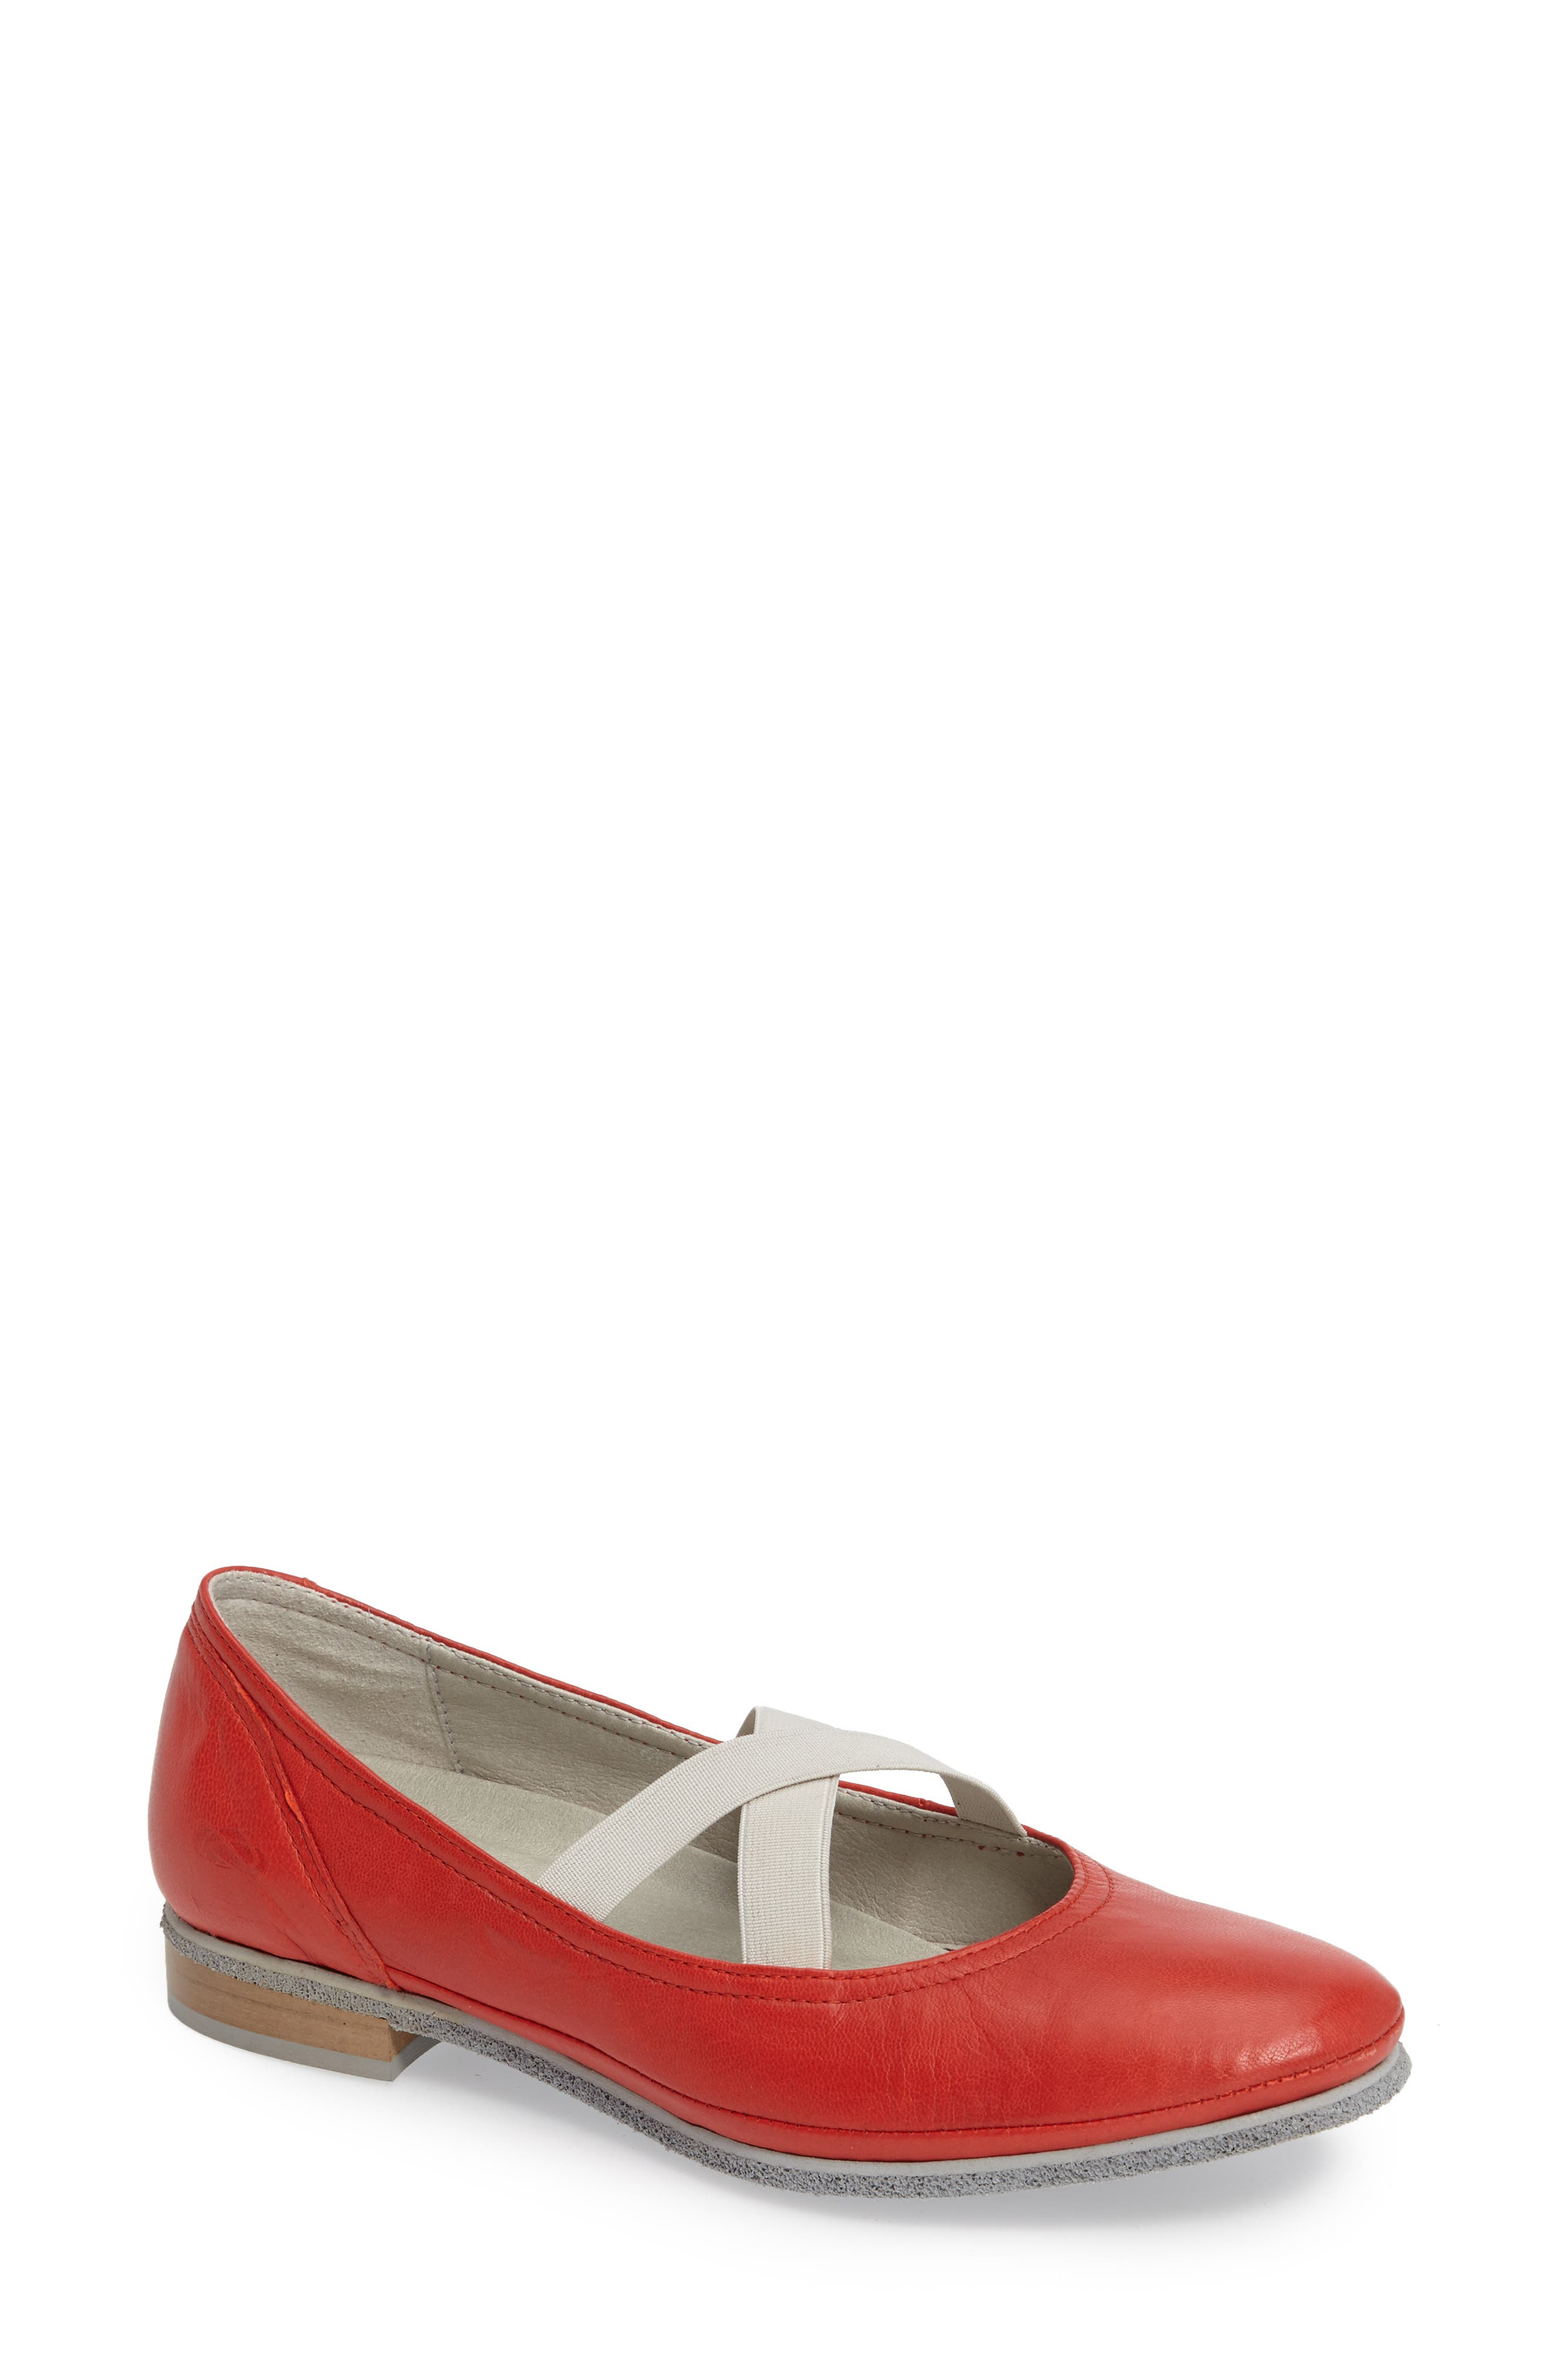 CLOUD Ballet Strappy Flat, Main, color, RED LEATHER